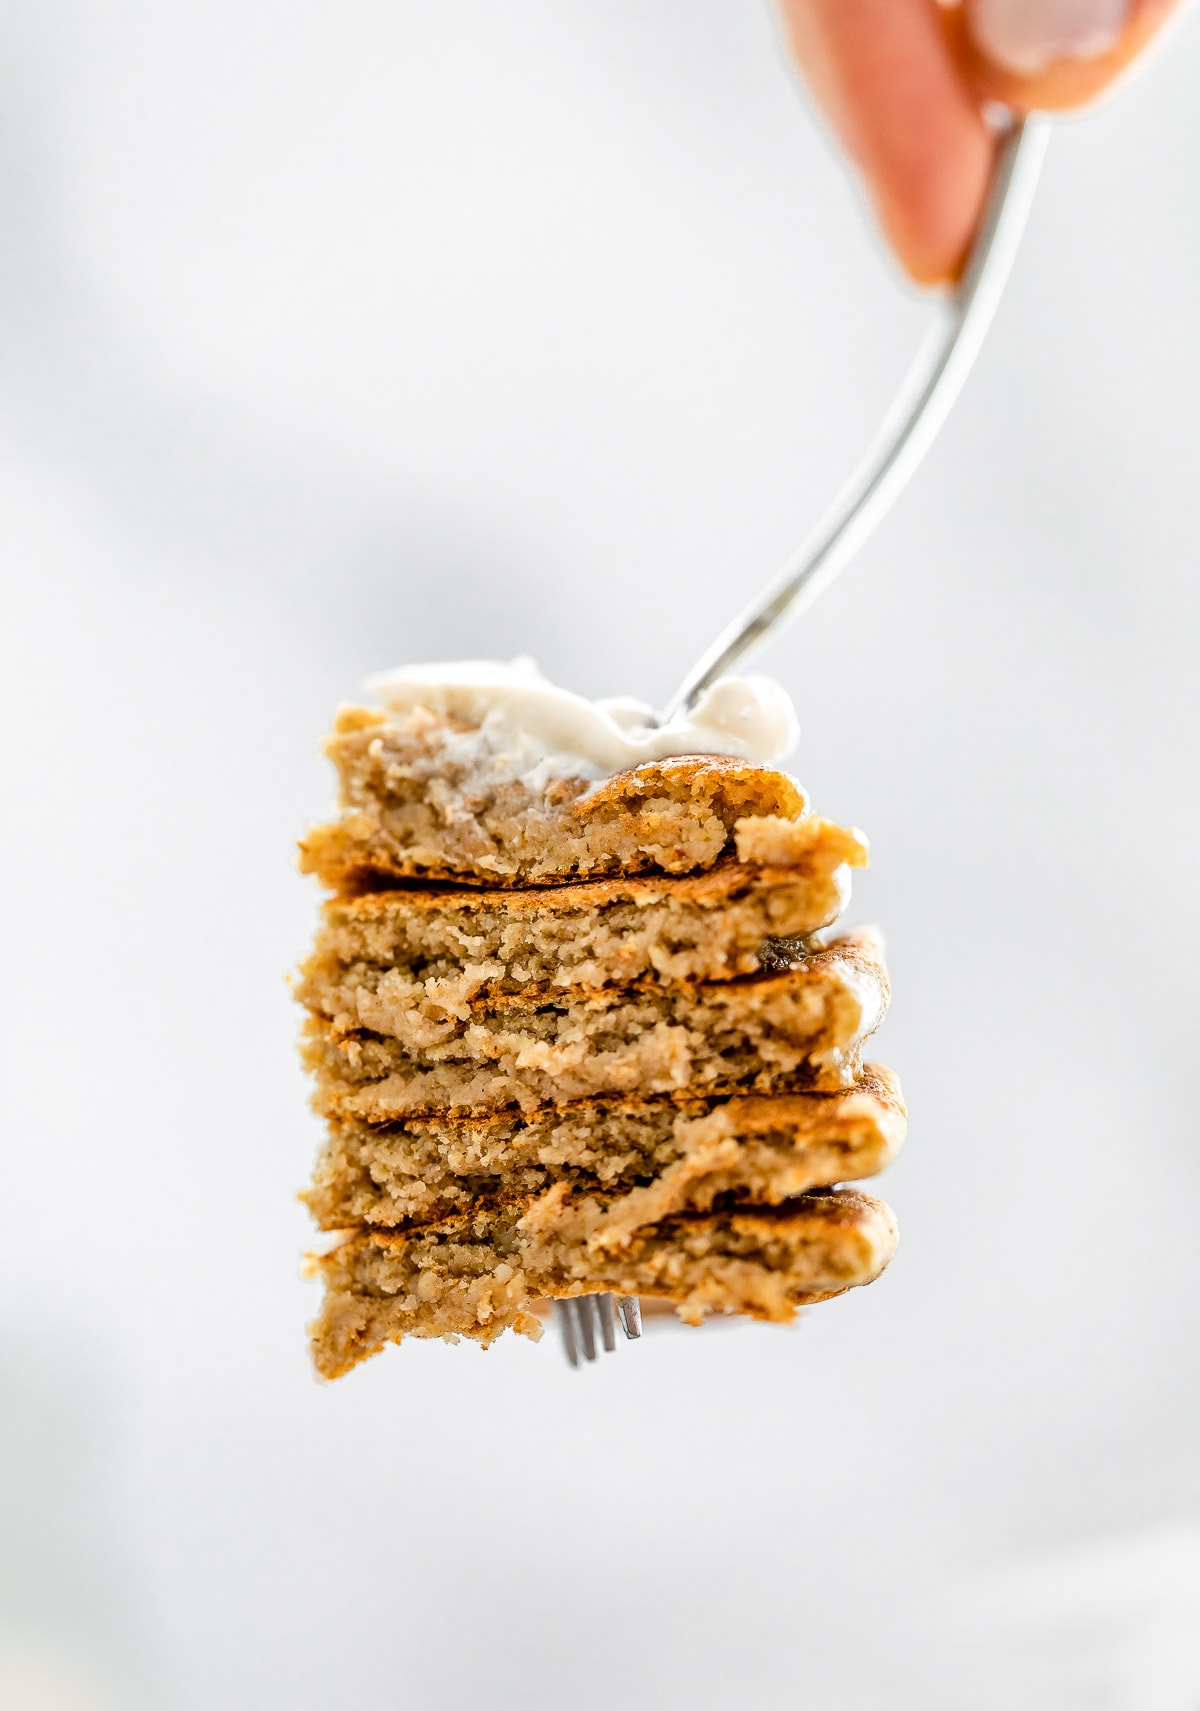 Fork holding up a bite of the vegan gluten free pancakes.